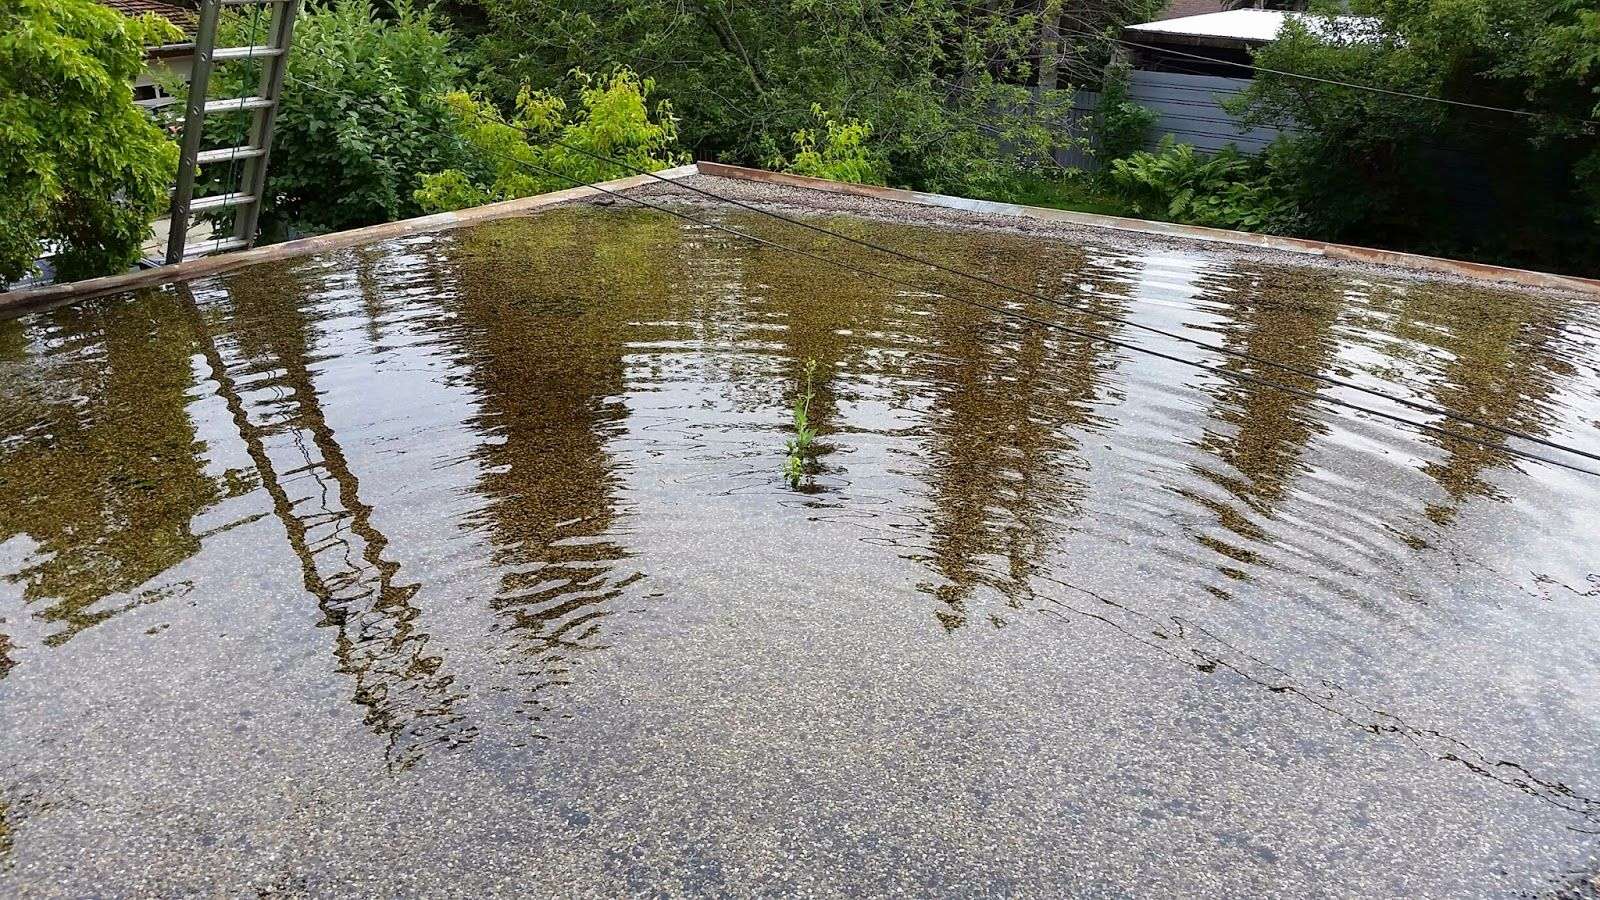 Pin by Edmonton Roofing on Edmonton Roof Drainage Roof